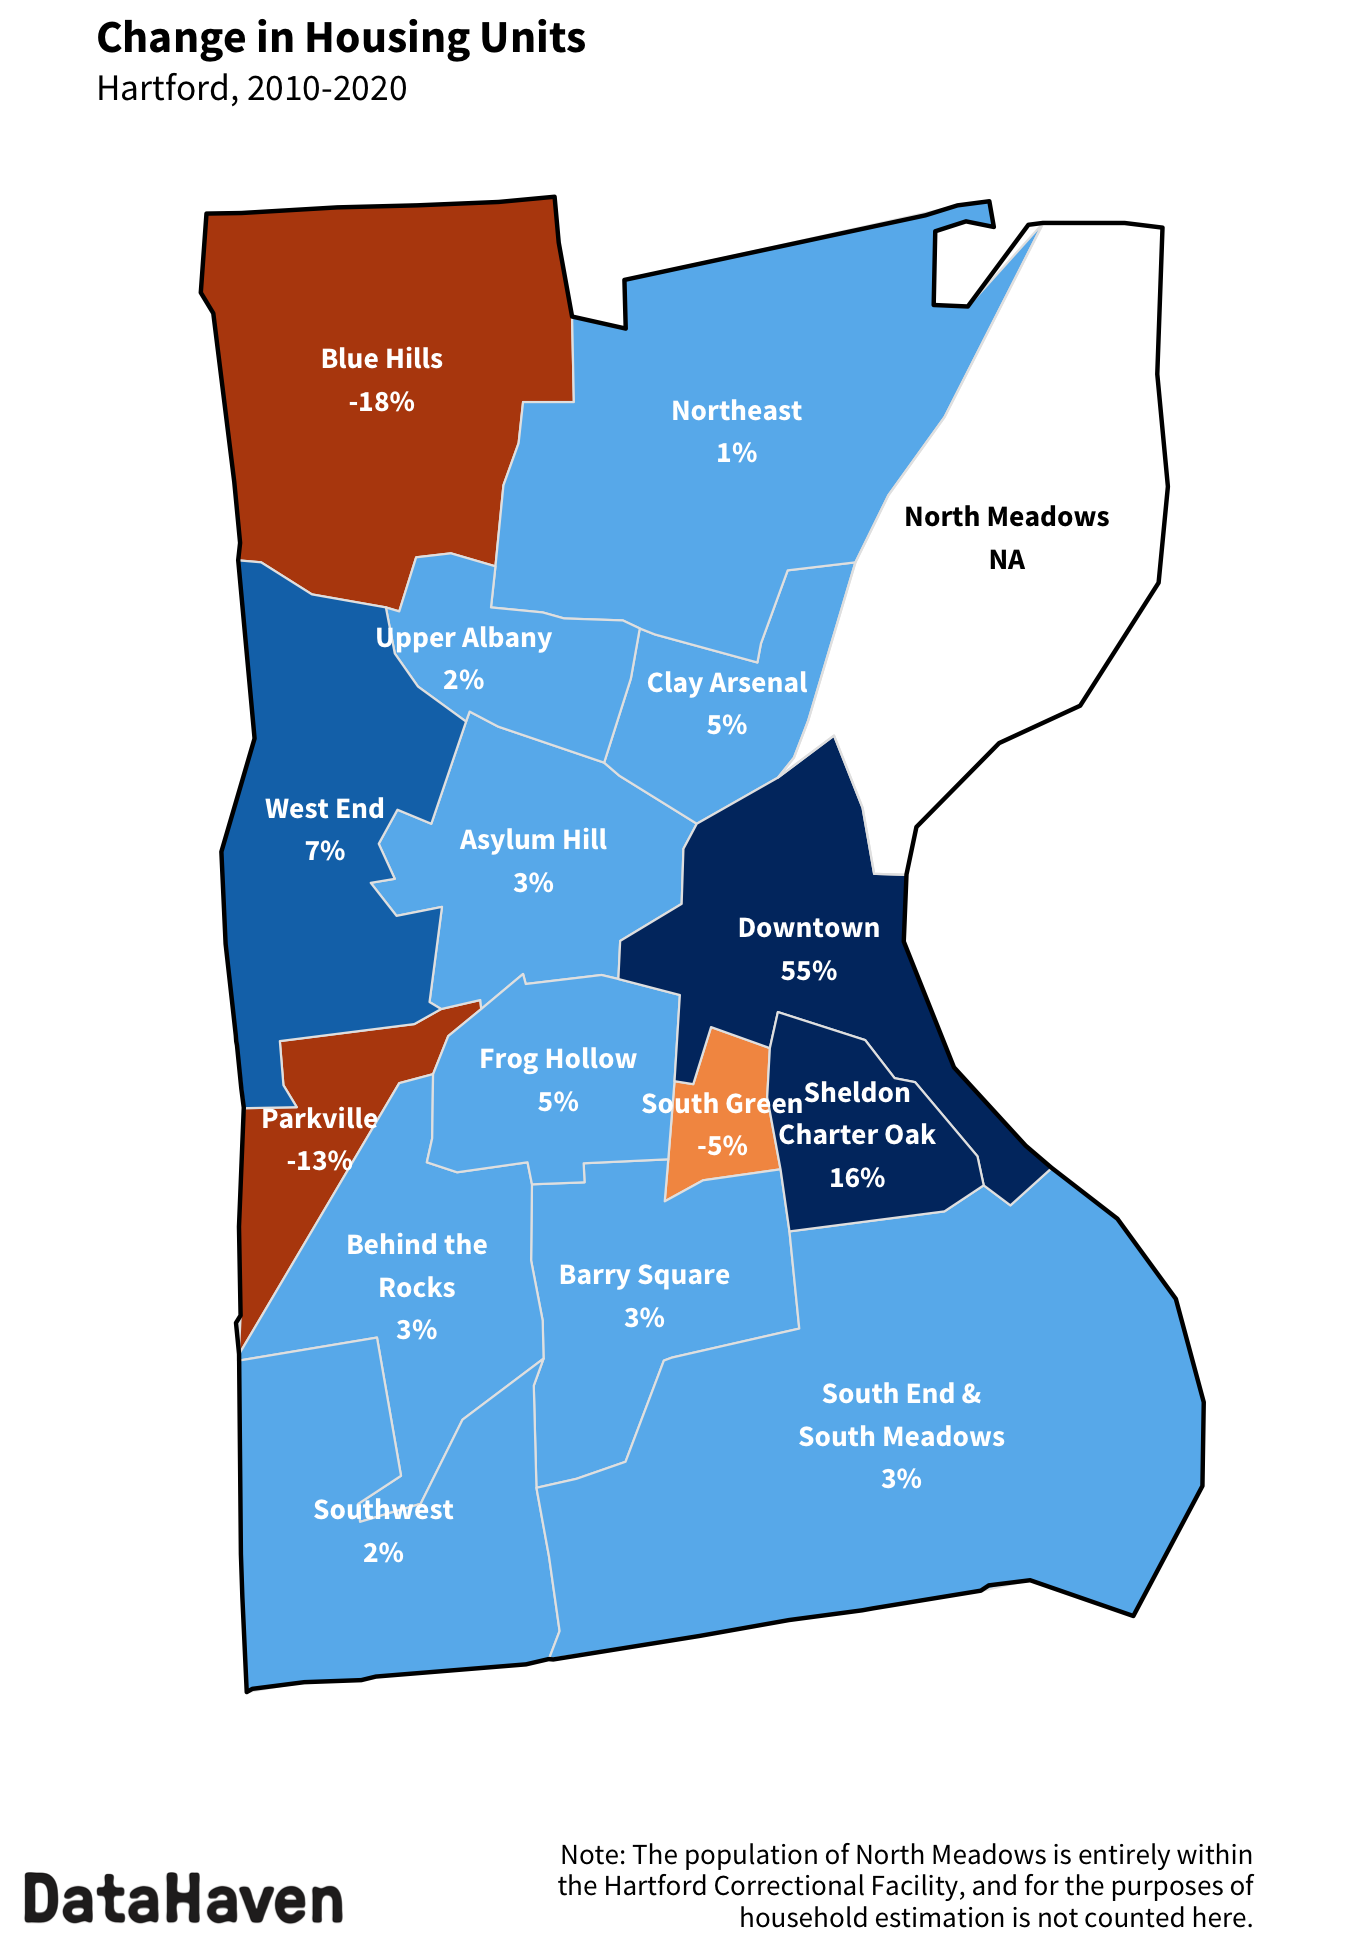 Hartford change in housing units from 2010 to 2020 Census